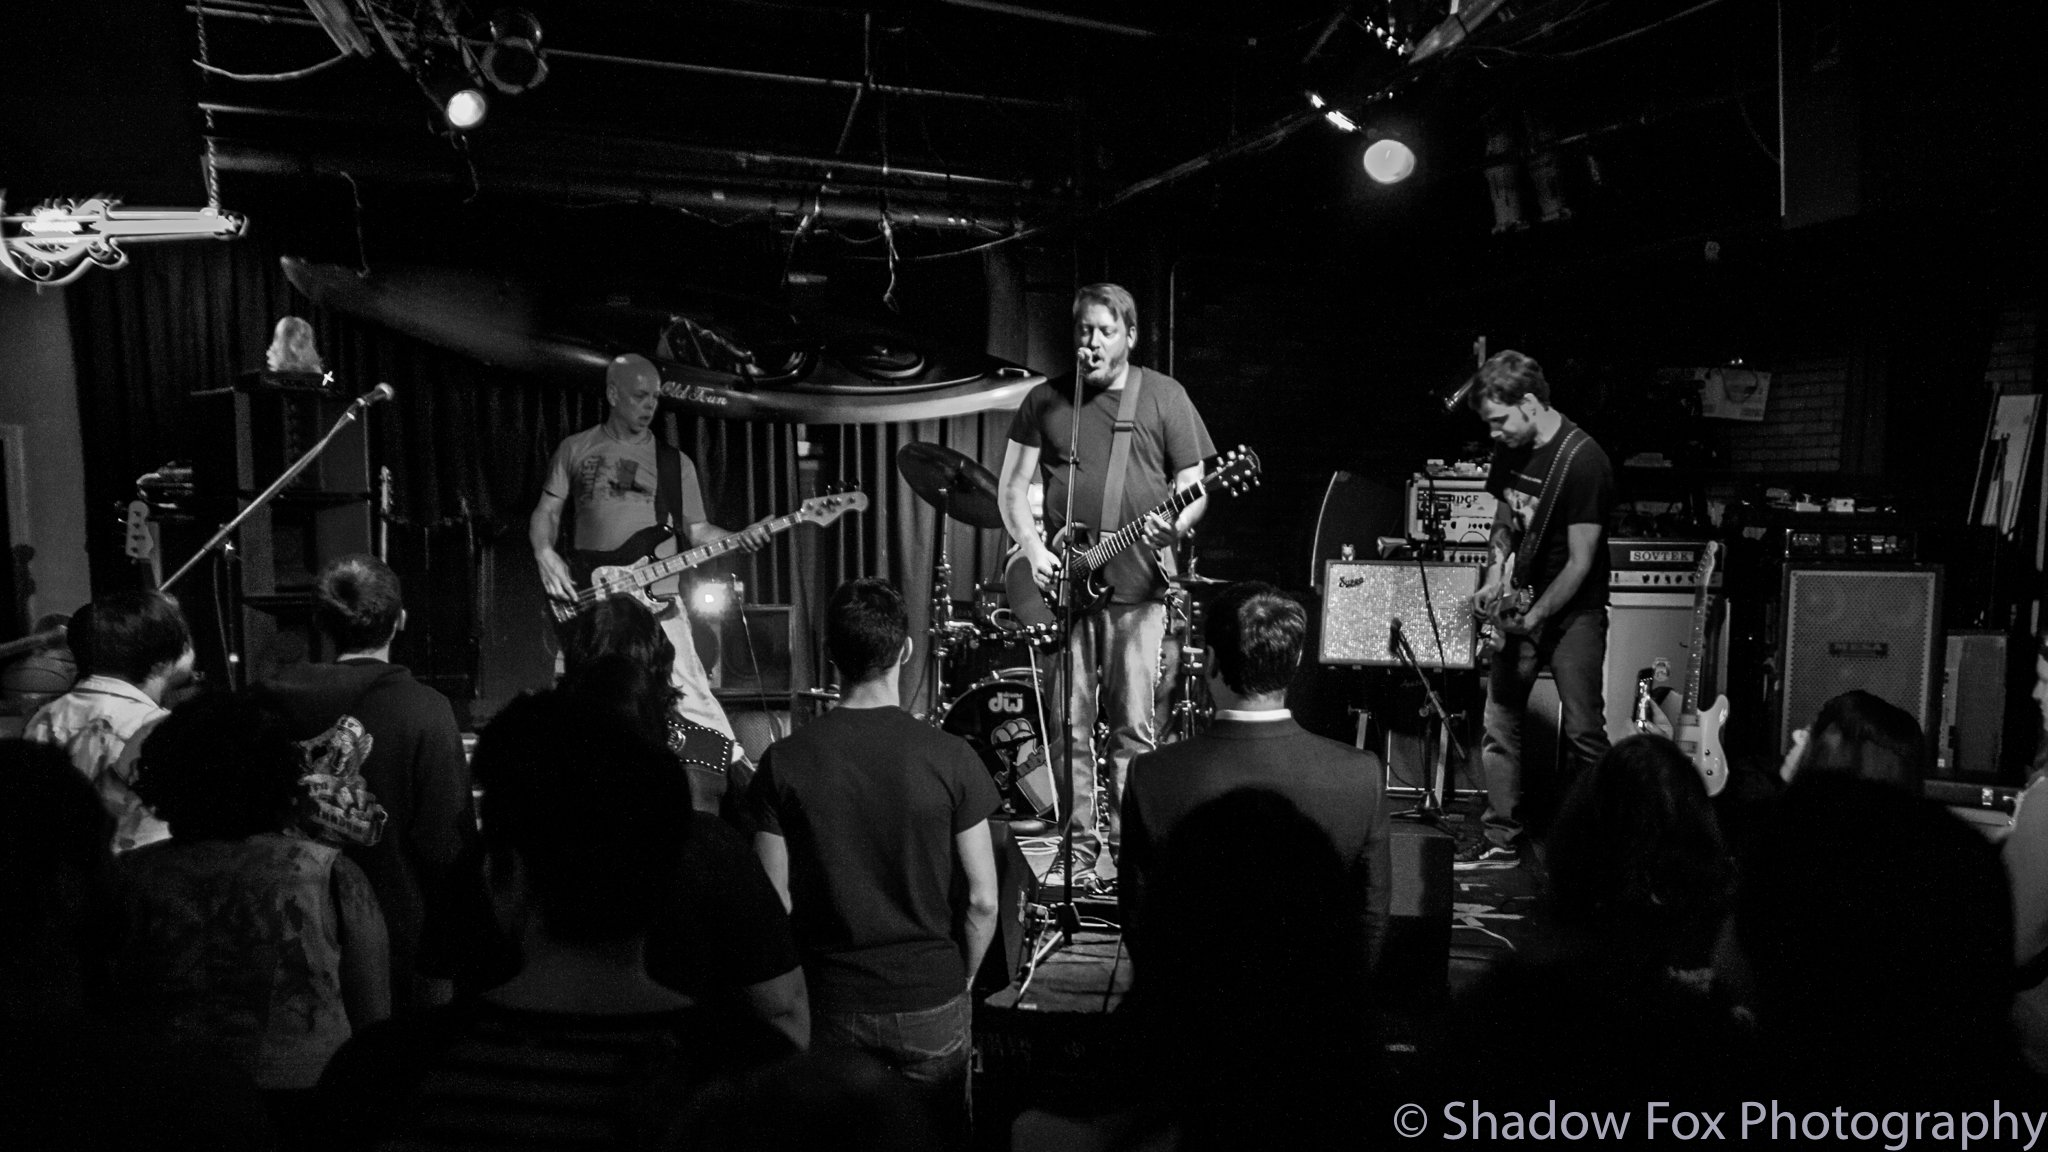 Knubby playing at 404's CD release show at Spicoli's in Waterloo, Iowa